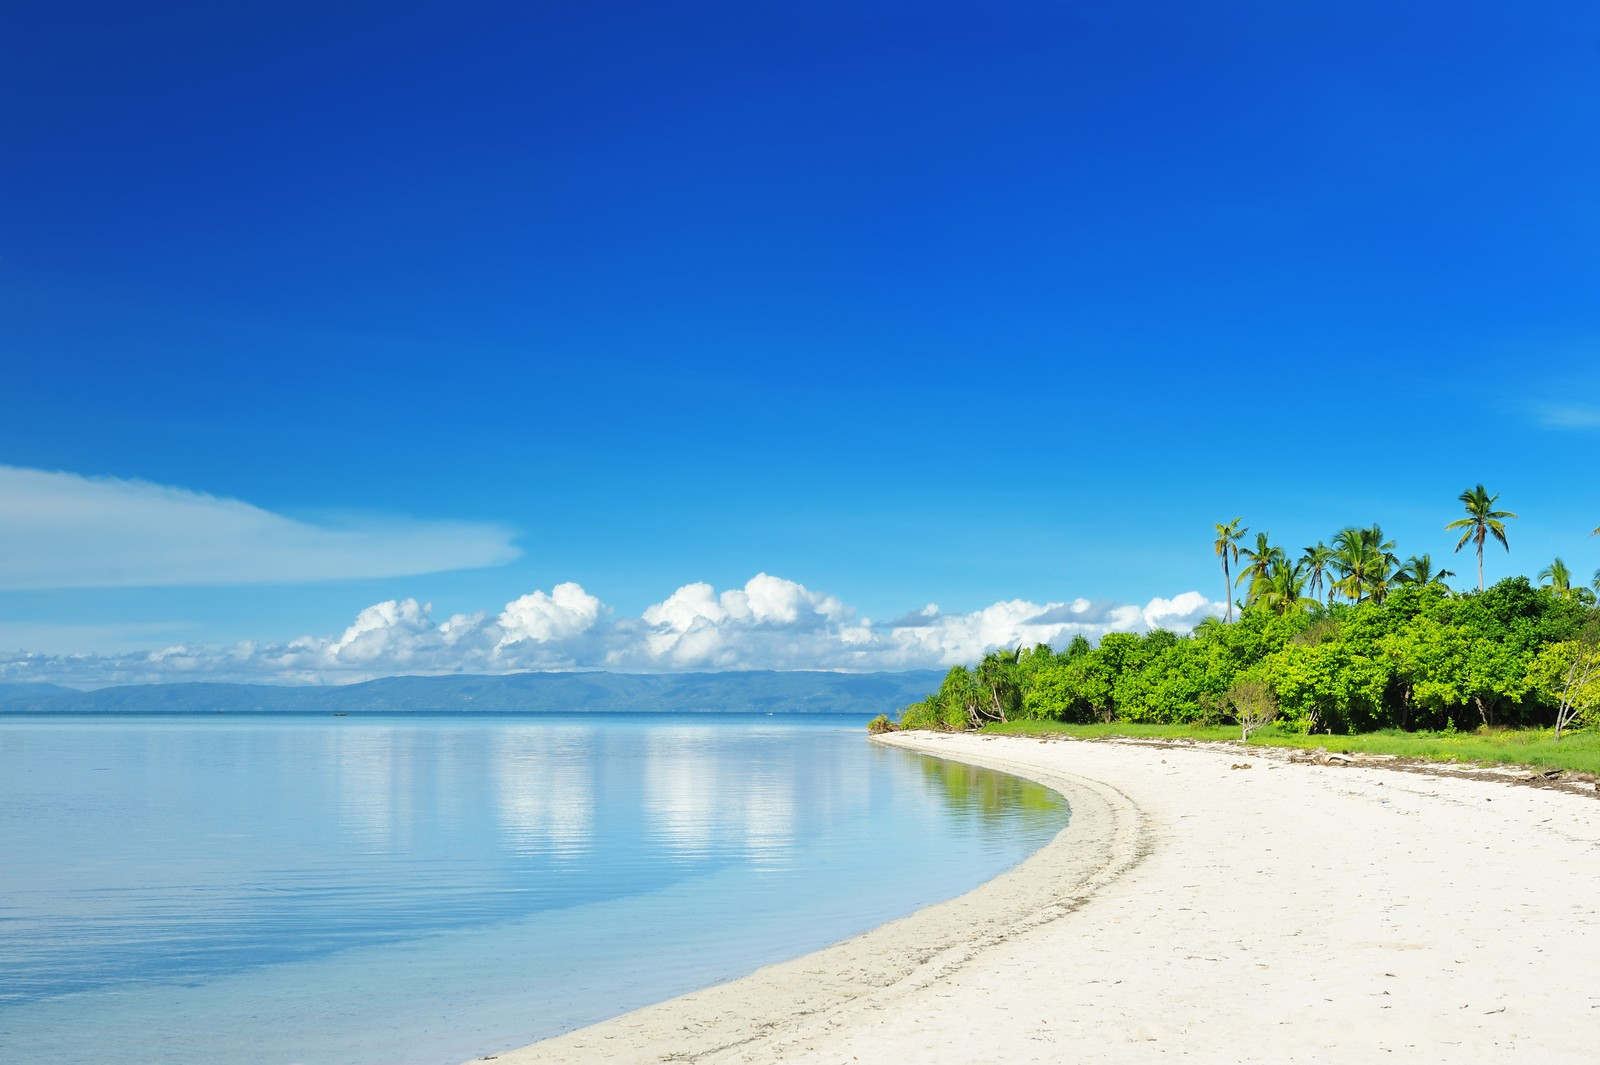 Beautiful stretch of white sand beach in Panglao Island